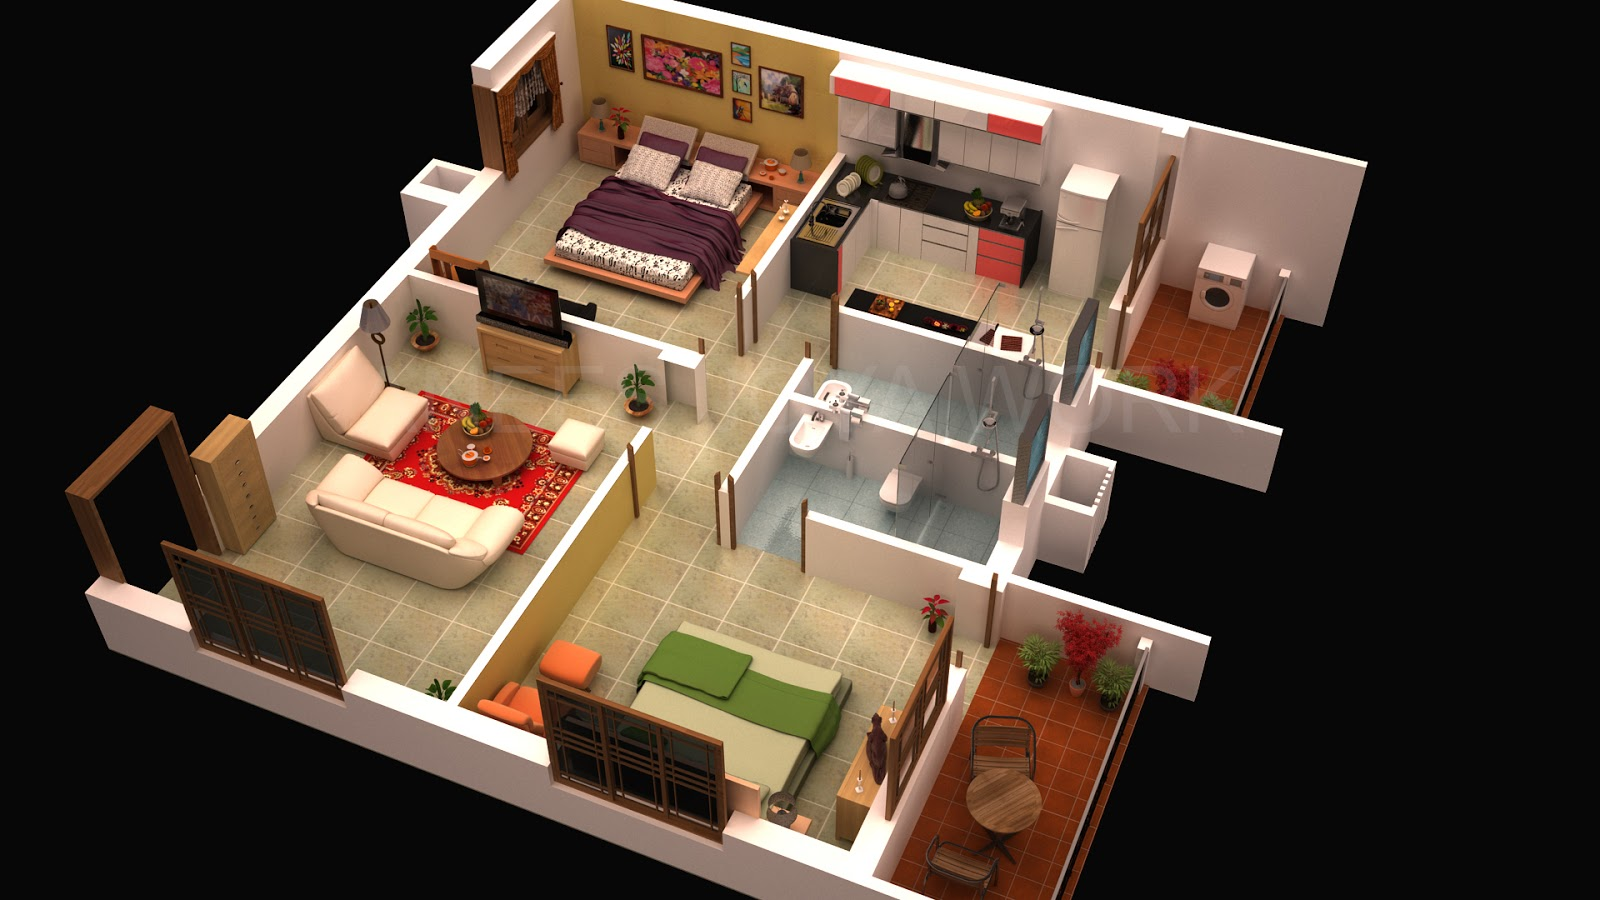 Anees joya works 3d interior design 3ds max vray for Design of 2bhk house